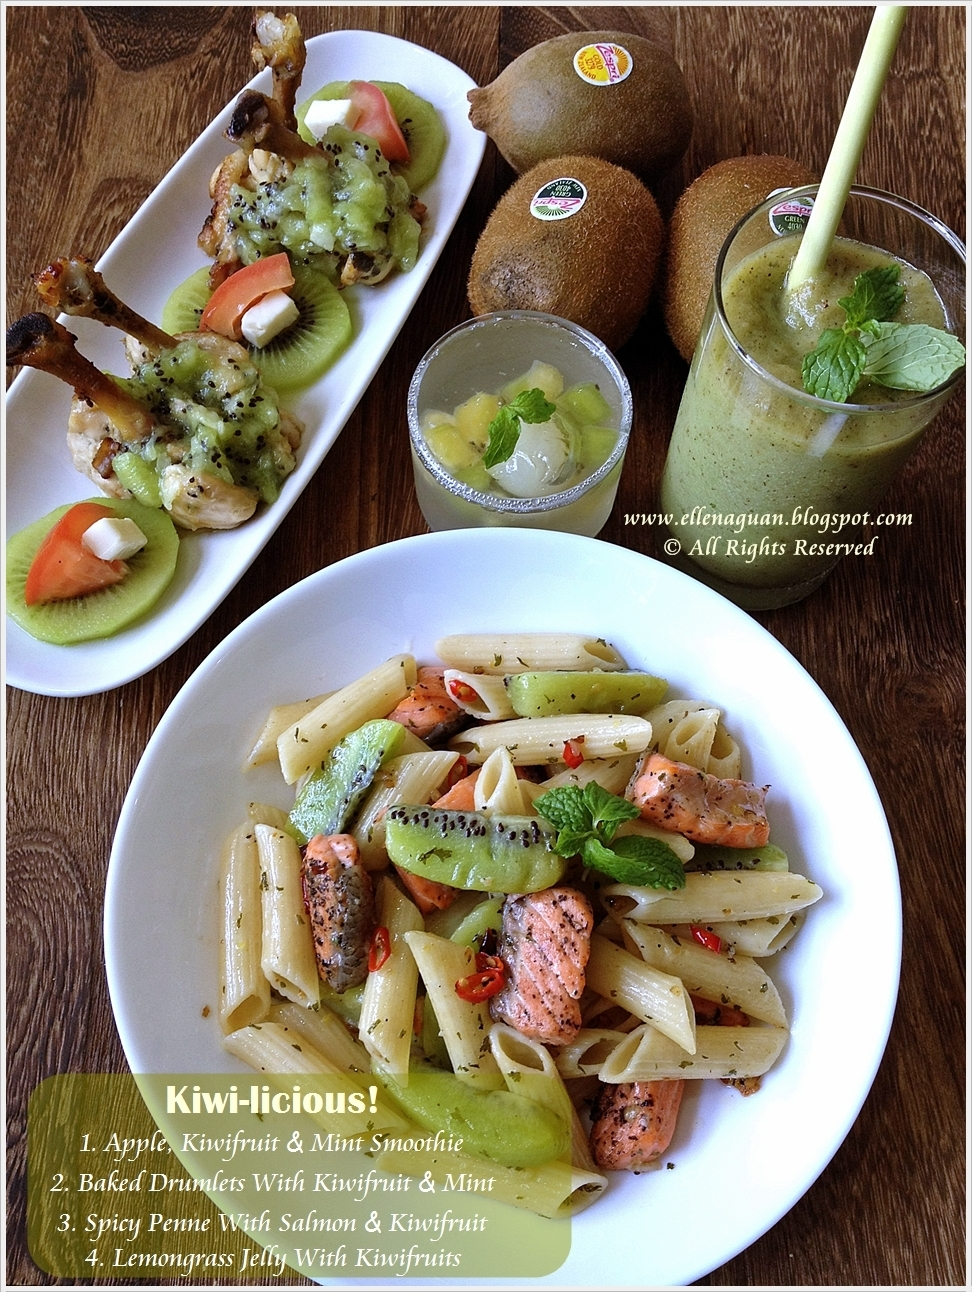 {Kiwifruits Feast} Apple, Kiwifruit Mint Smoothie, Baked Drumlets With Kiwifruit, Spicy Penne with Salmon and Kiwifruit plus Lemongrass Jelly with Kiwifruits